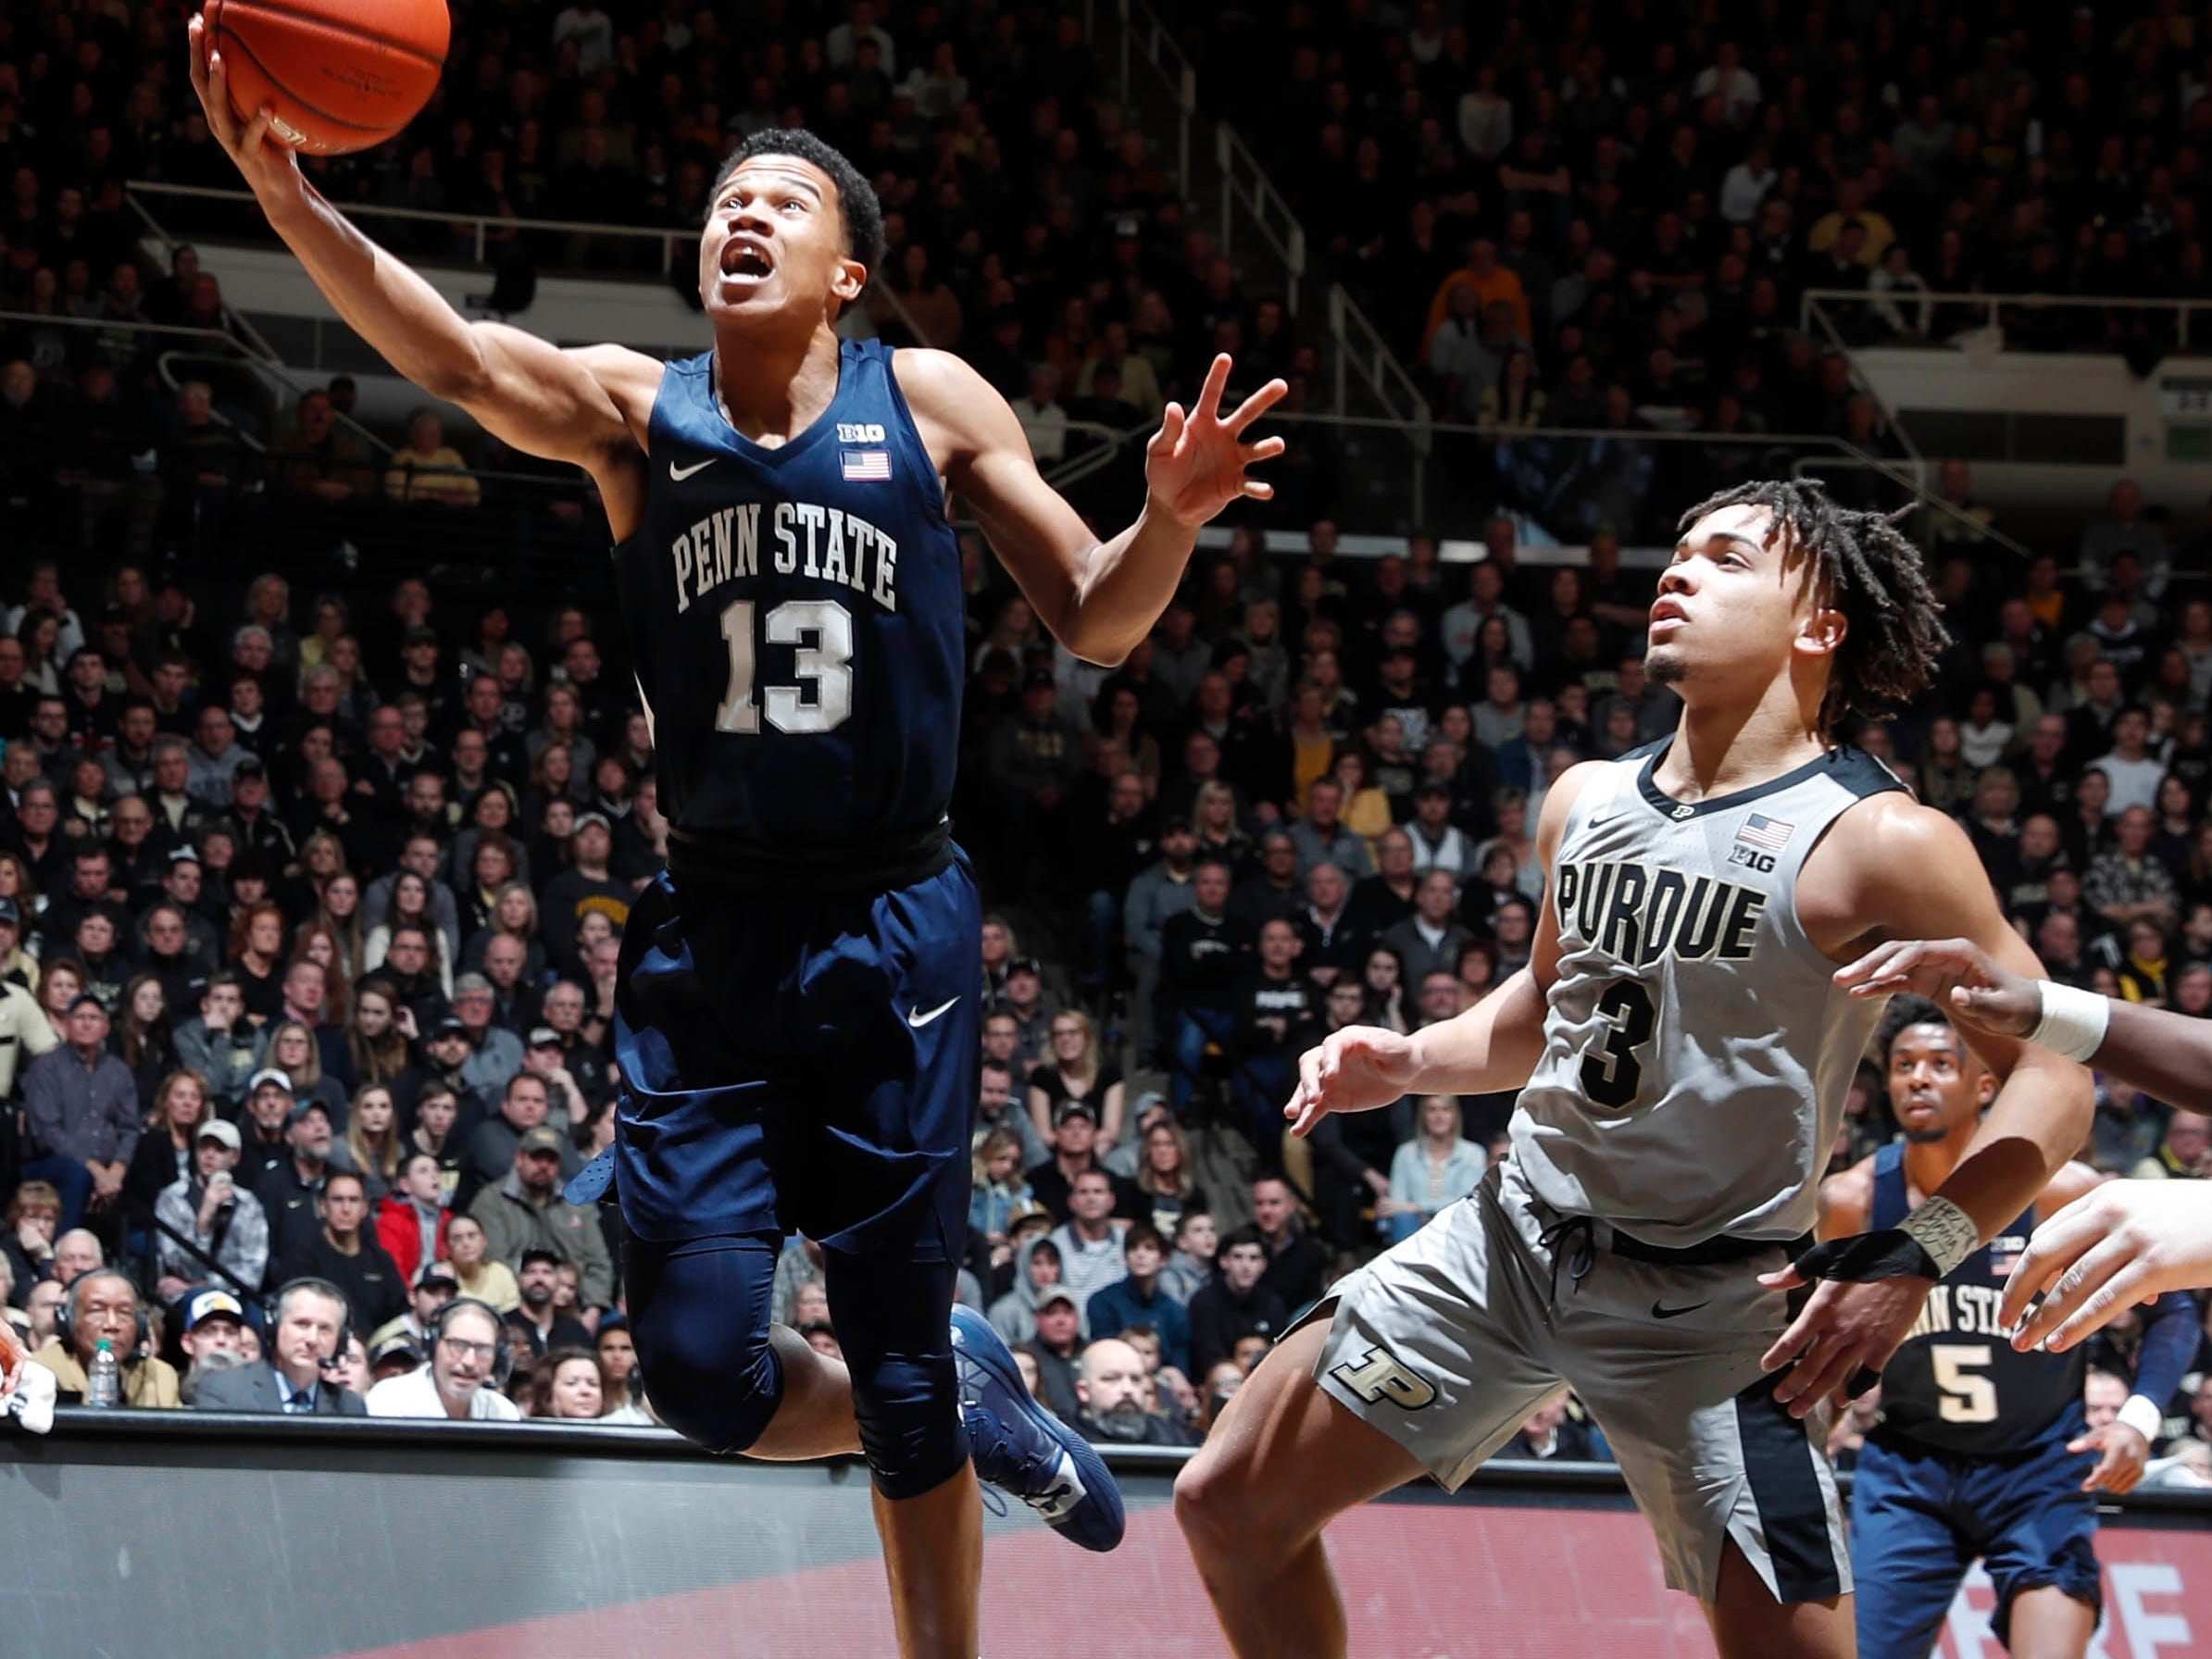 Feb 16, 2019; West Lafayette, IN, USA; Penn State Nittany Lions Rasir Bolton (13) takes a shot against Purdue Boilermakers guard Carsen Edwards (3) during the first half at Mackey Arena. Mandatory Credit: Brian Spurlock-USA TODAY Sports